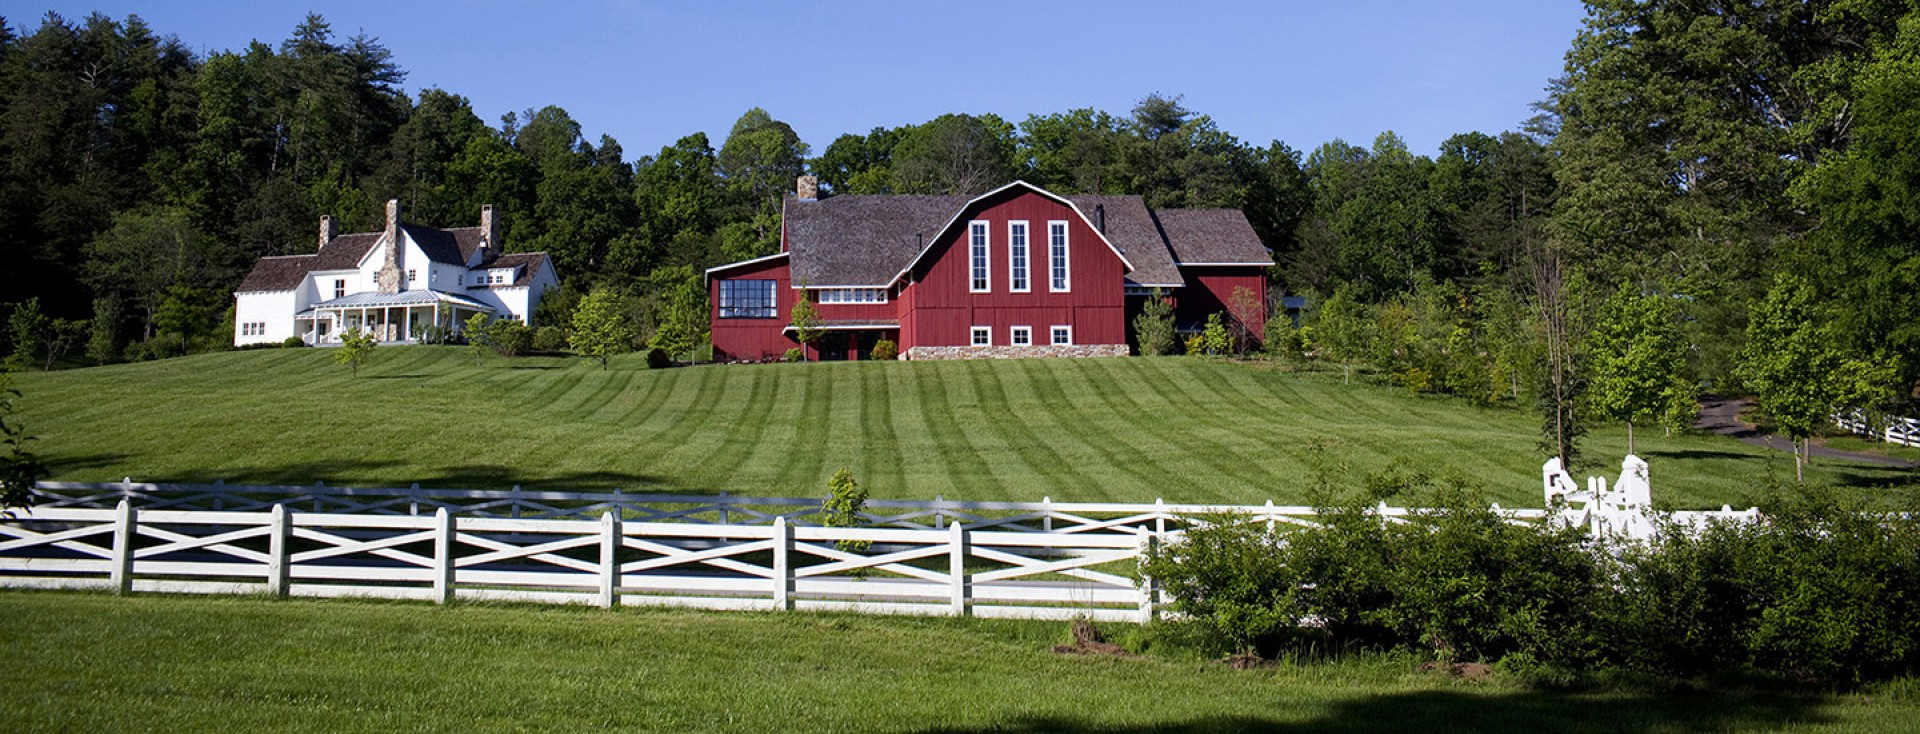 Blackberry Farm, Boutique Hotel And Gourmet Restaurant In